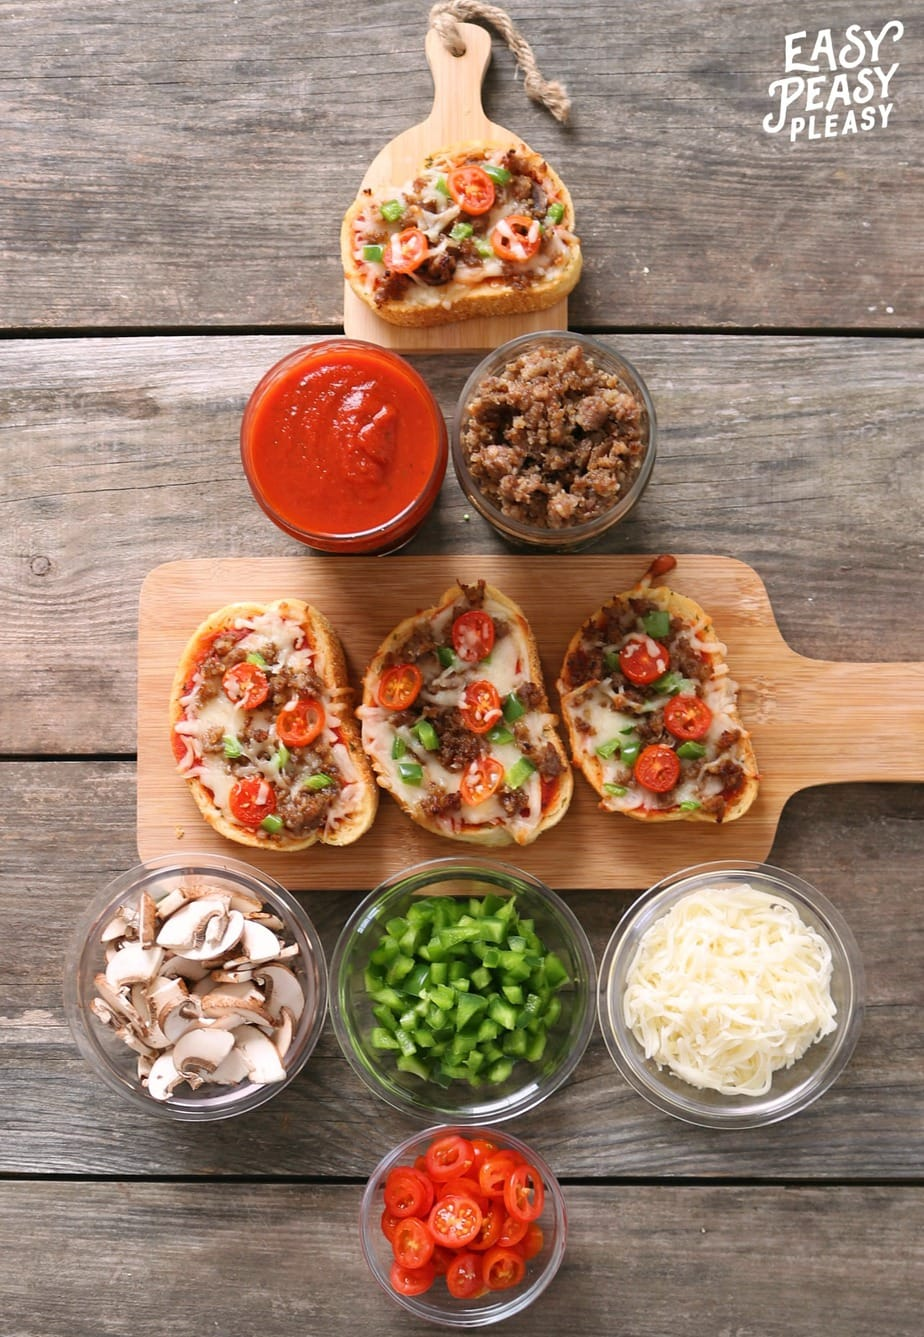 The perfect recipe for your Christmas Party. Throw together quick ingredients for the perfect Texas Toast Garlic Bread Pizzas. Let your guests customize their toppings.